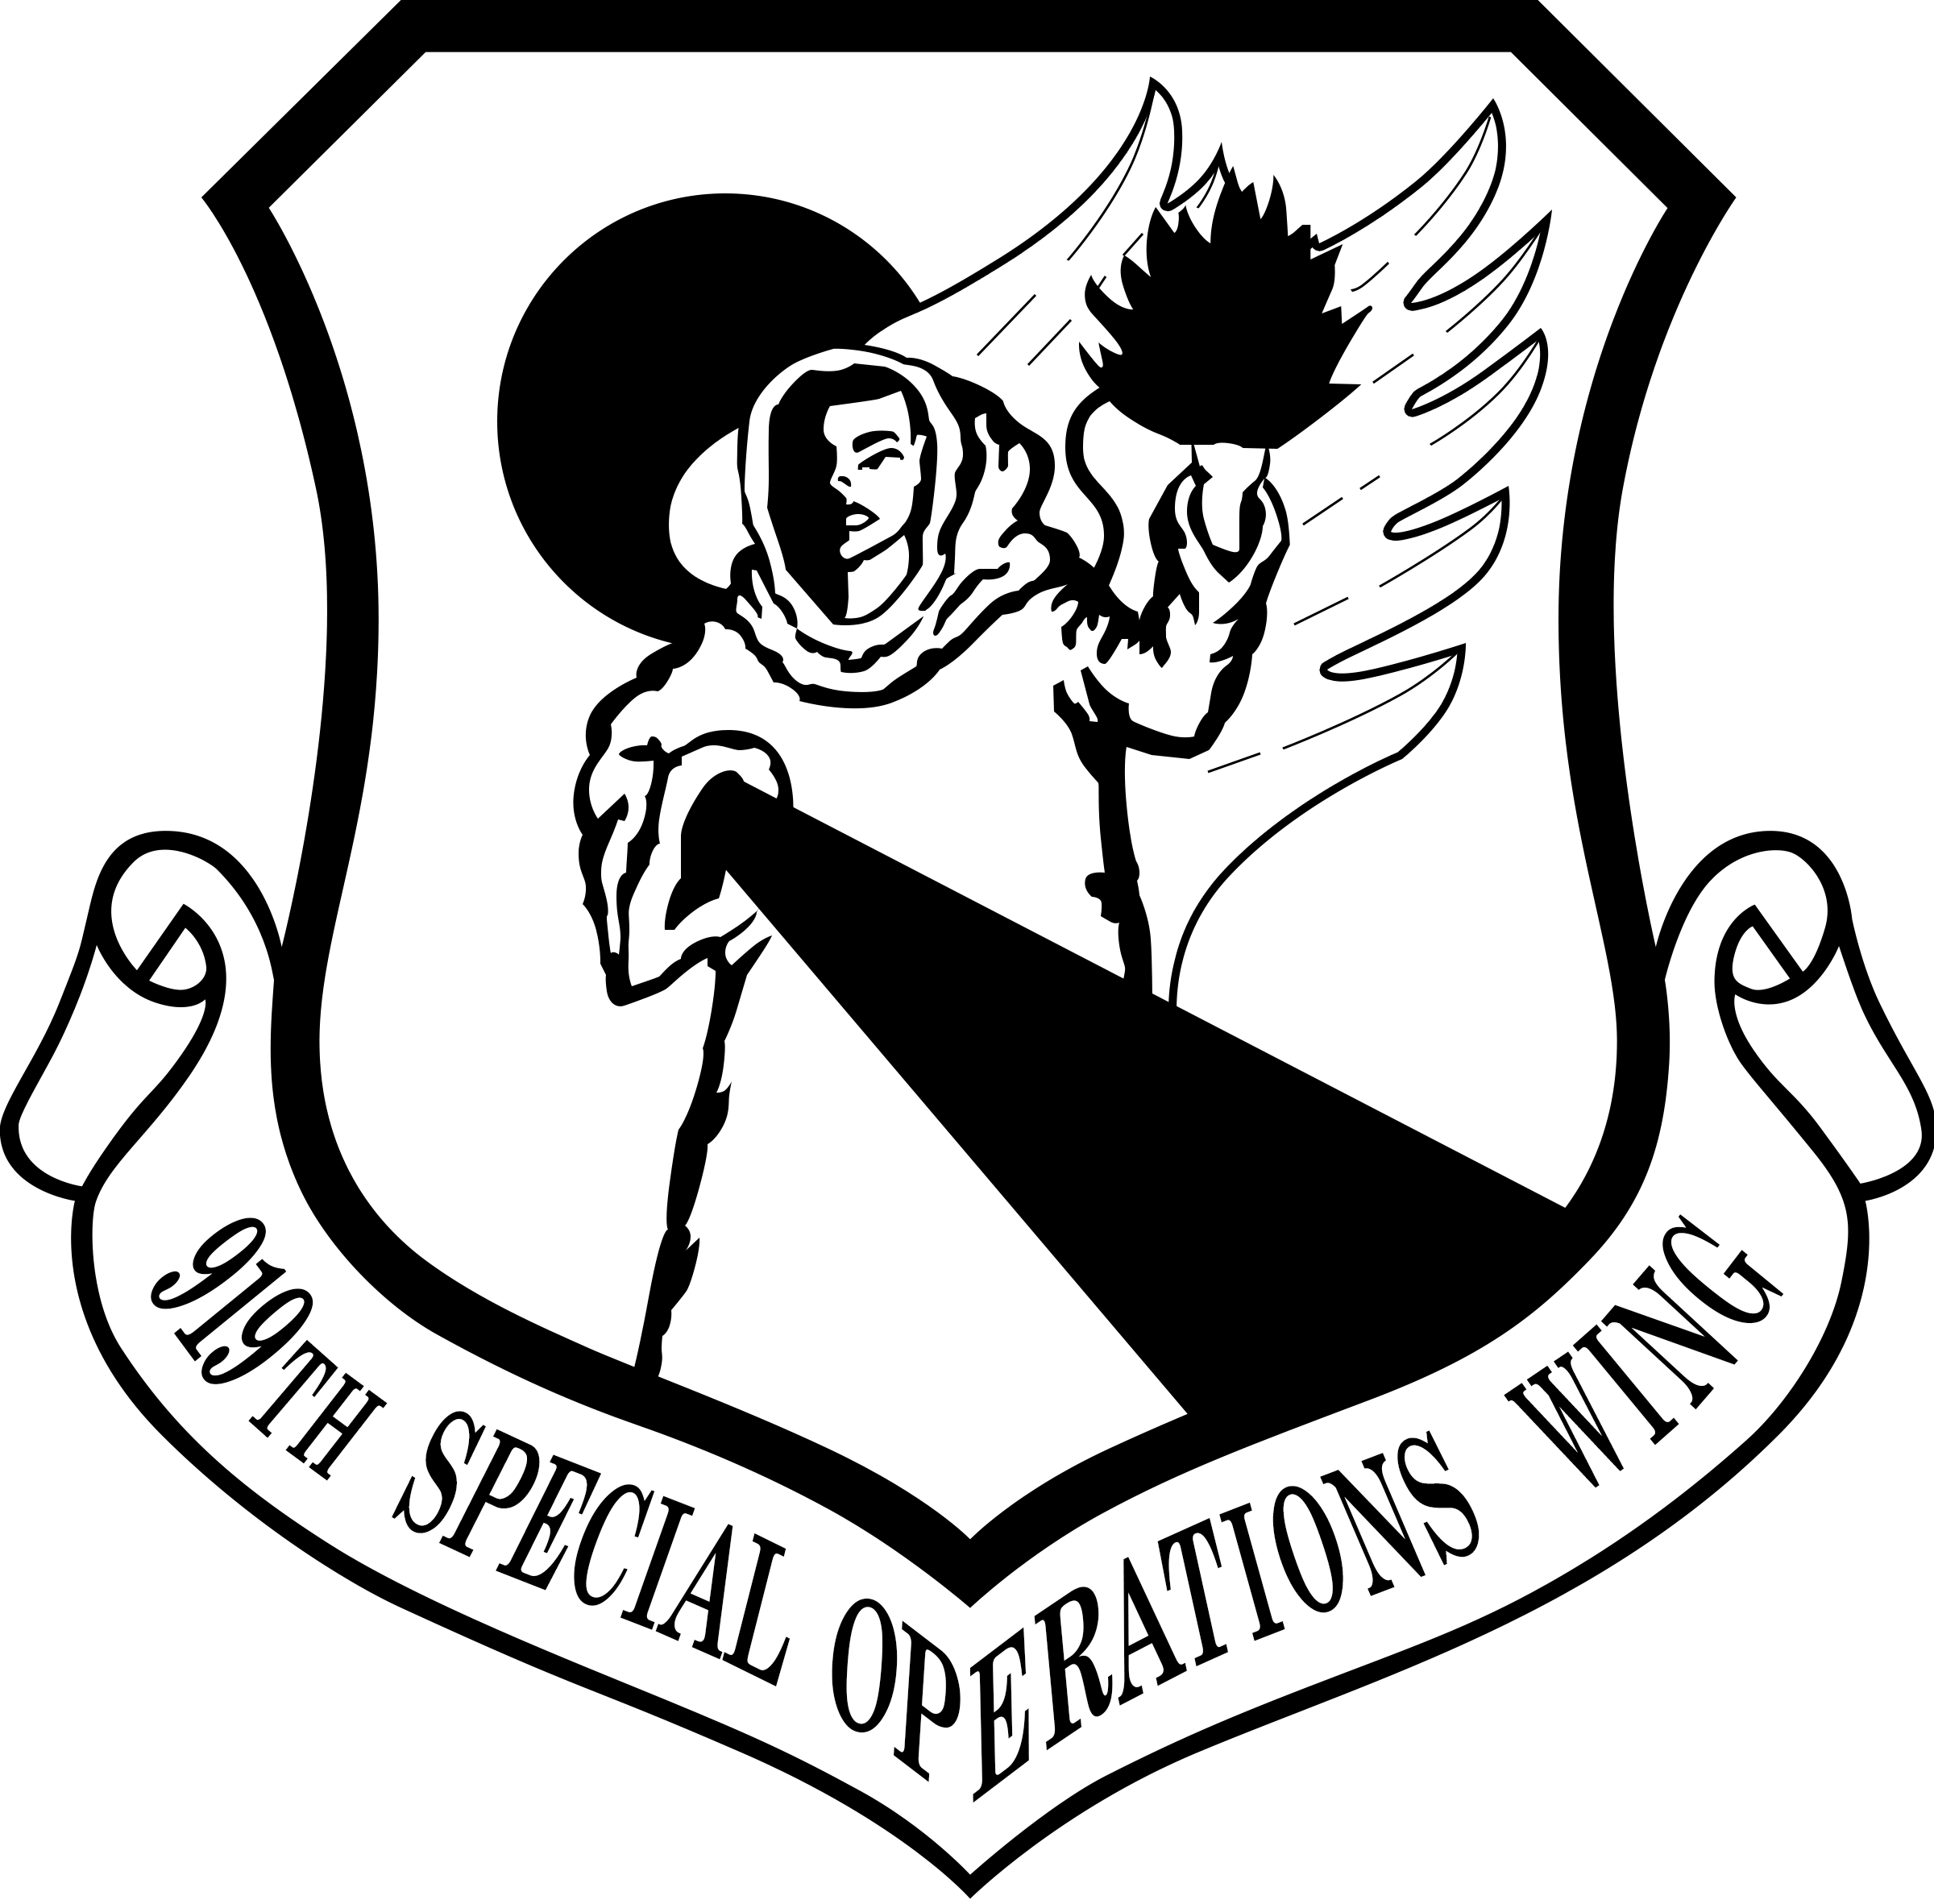 File th special operations. Fist clipart rebellion